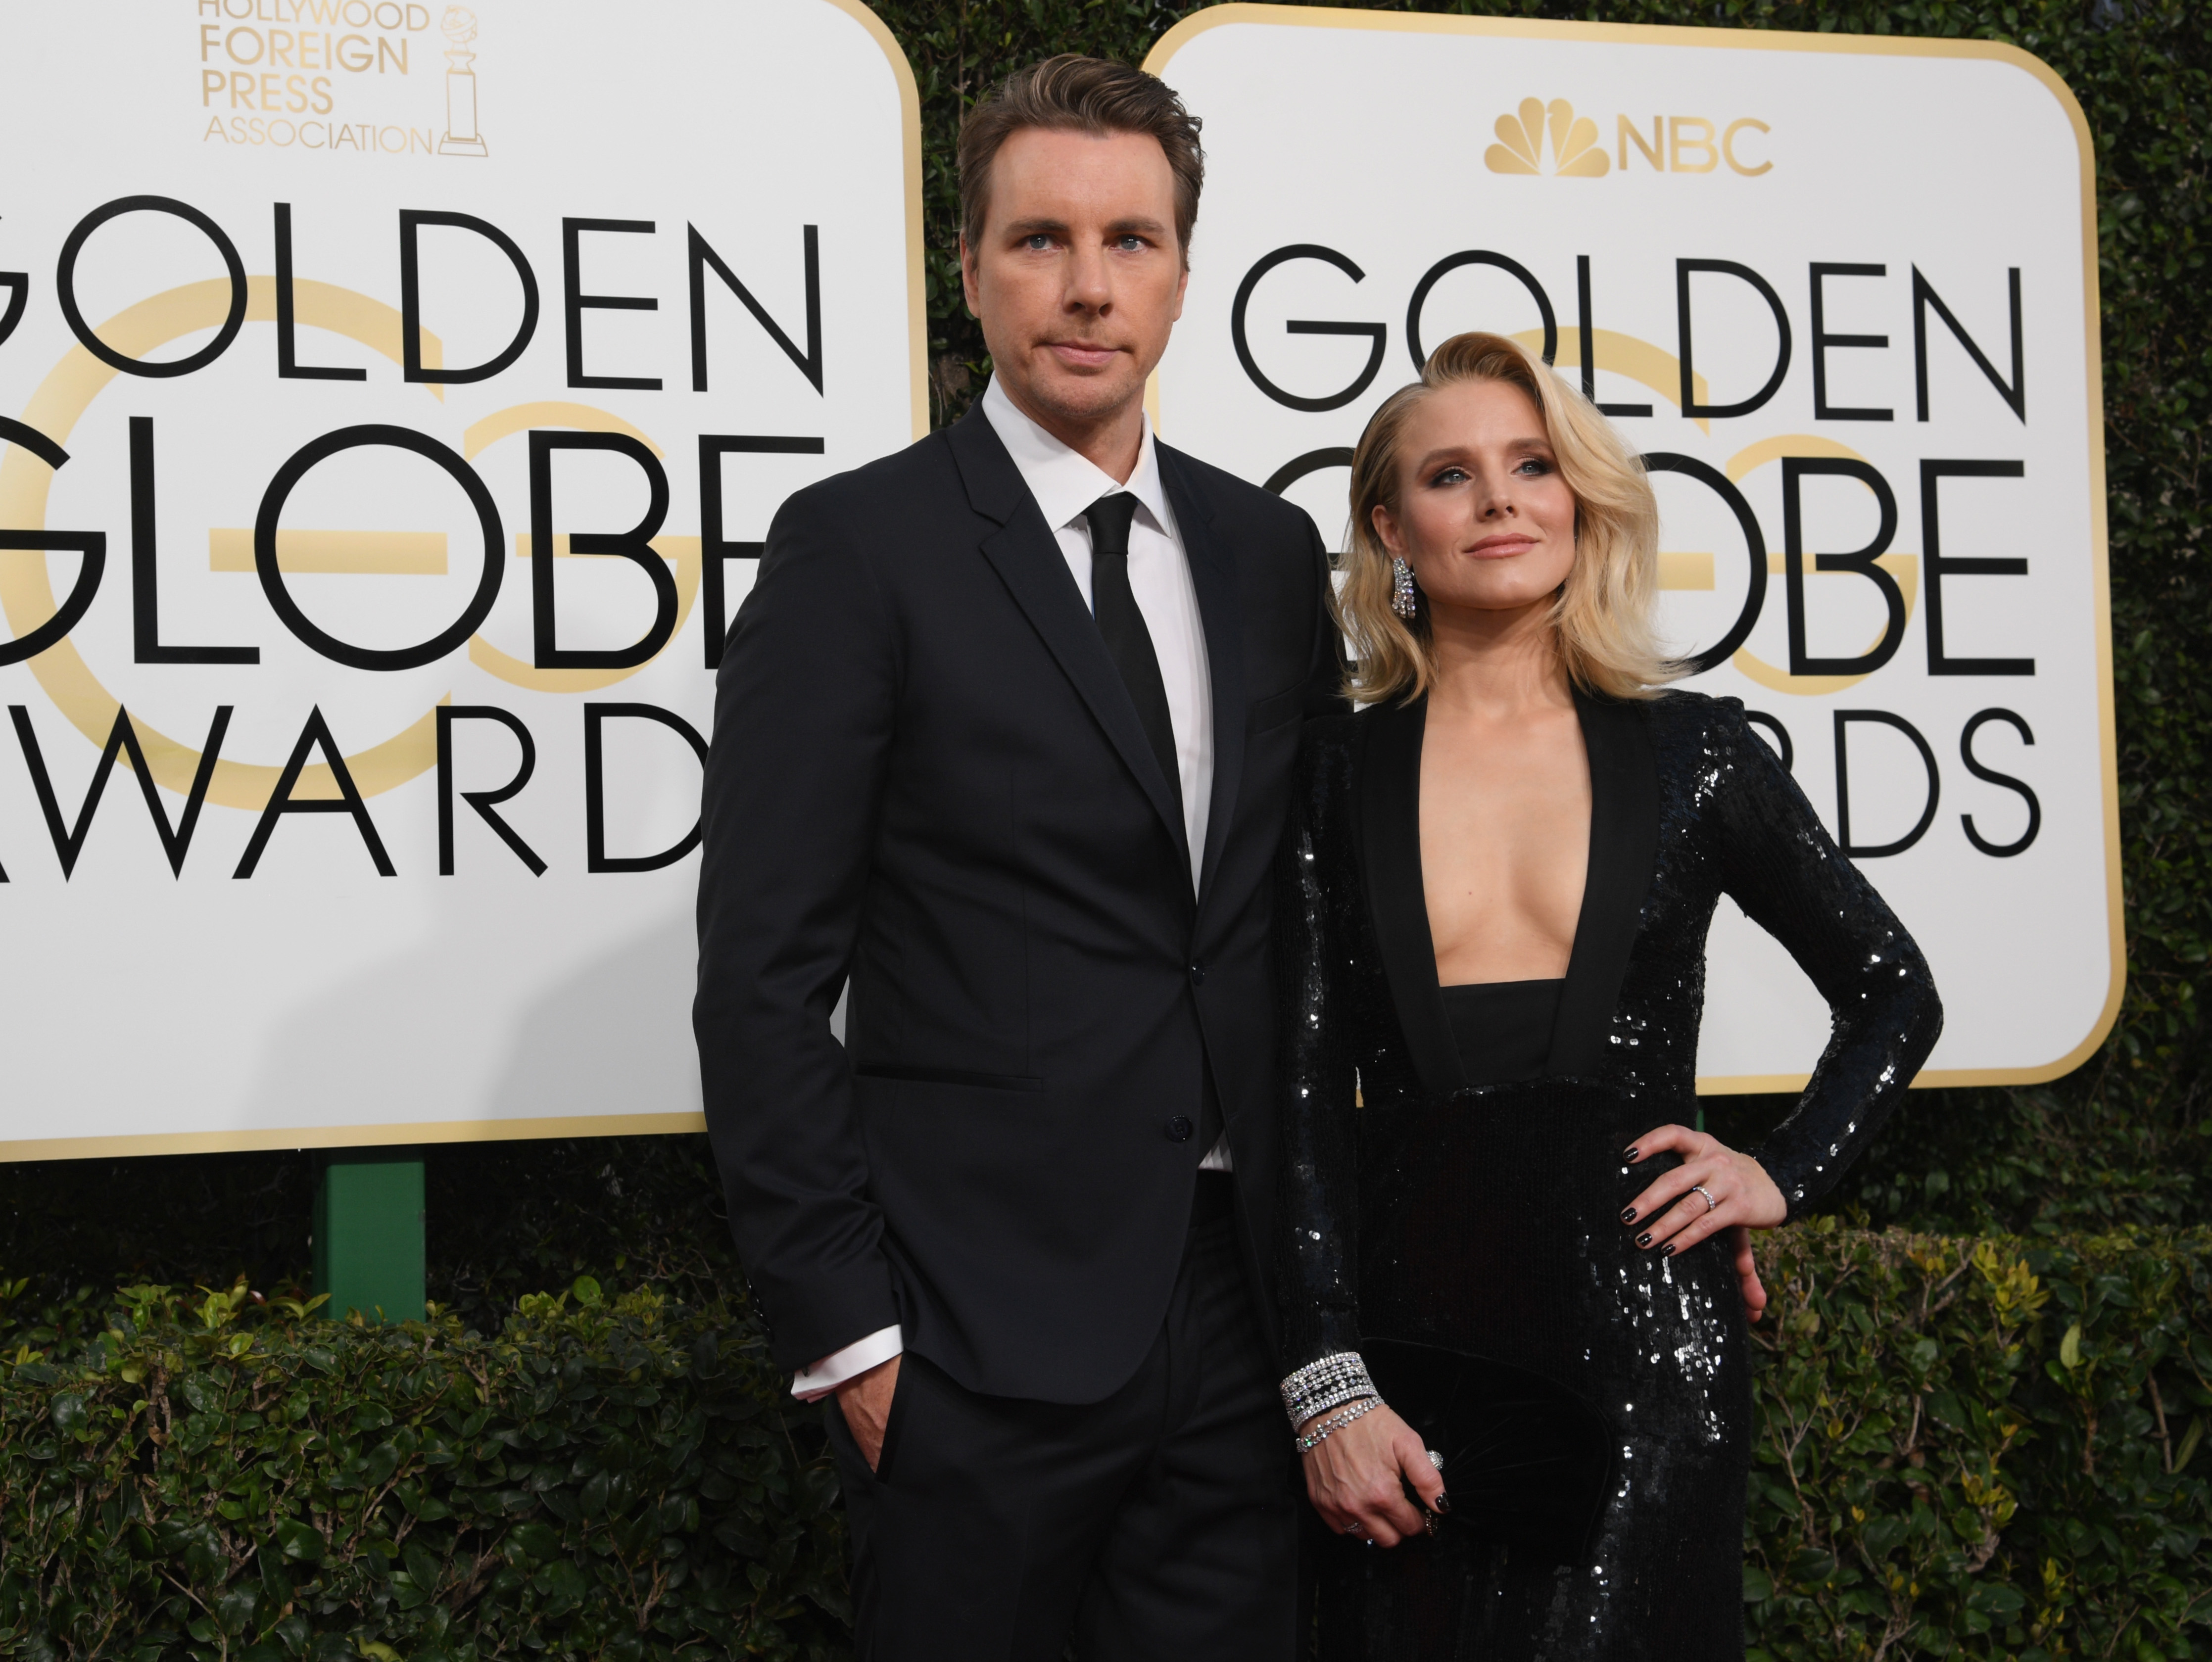 Dax Shepard and Kristen Bell arrive to the 74th Annual Golden Globe Awards, held at the Beverly Hilton Hotel on Jan. 8, 2017.